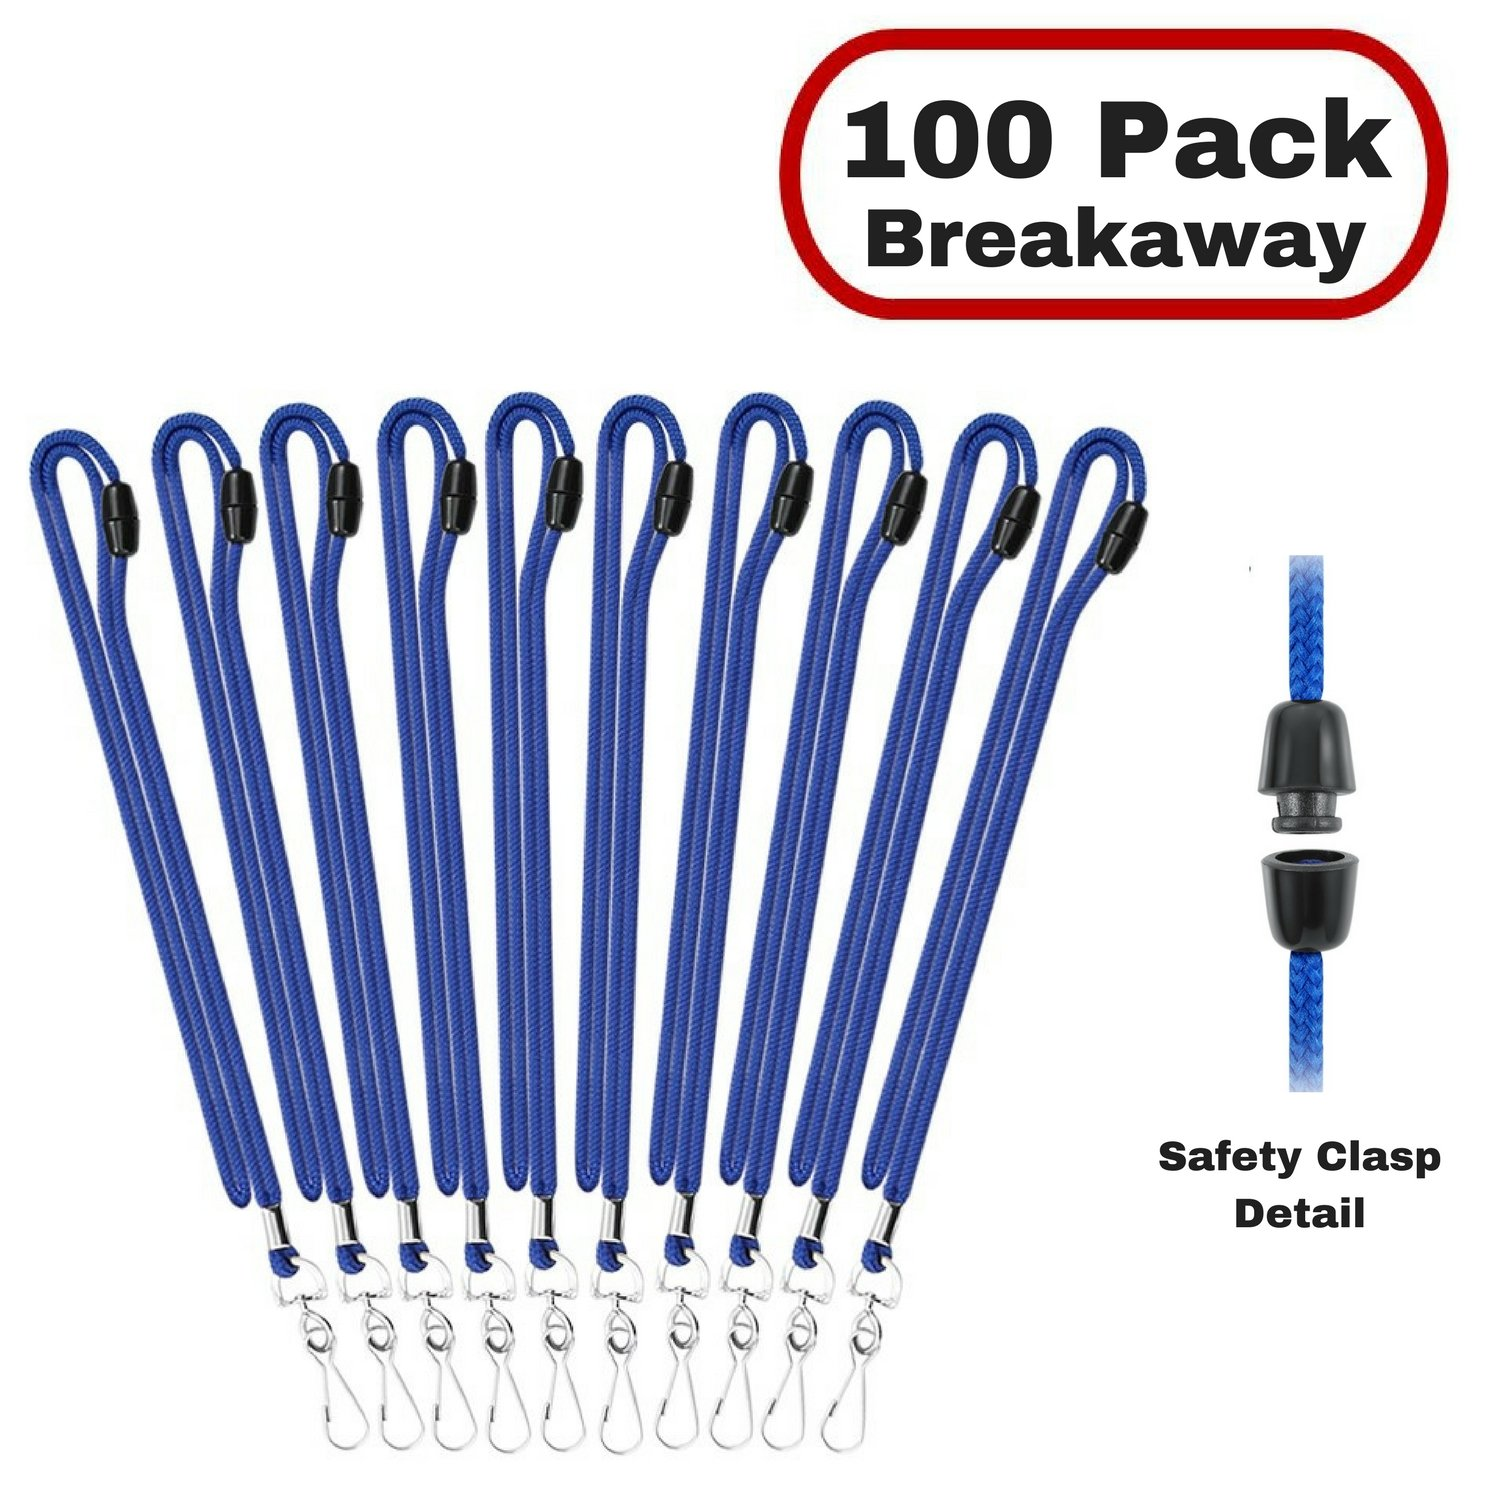 MIFFLIN Safety Lanyards in Bulk for ID Badge Holder (Royal Blue Breakaway, 100 Pack)